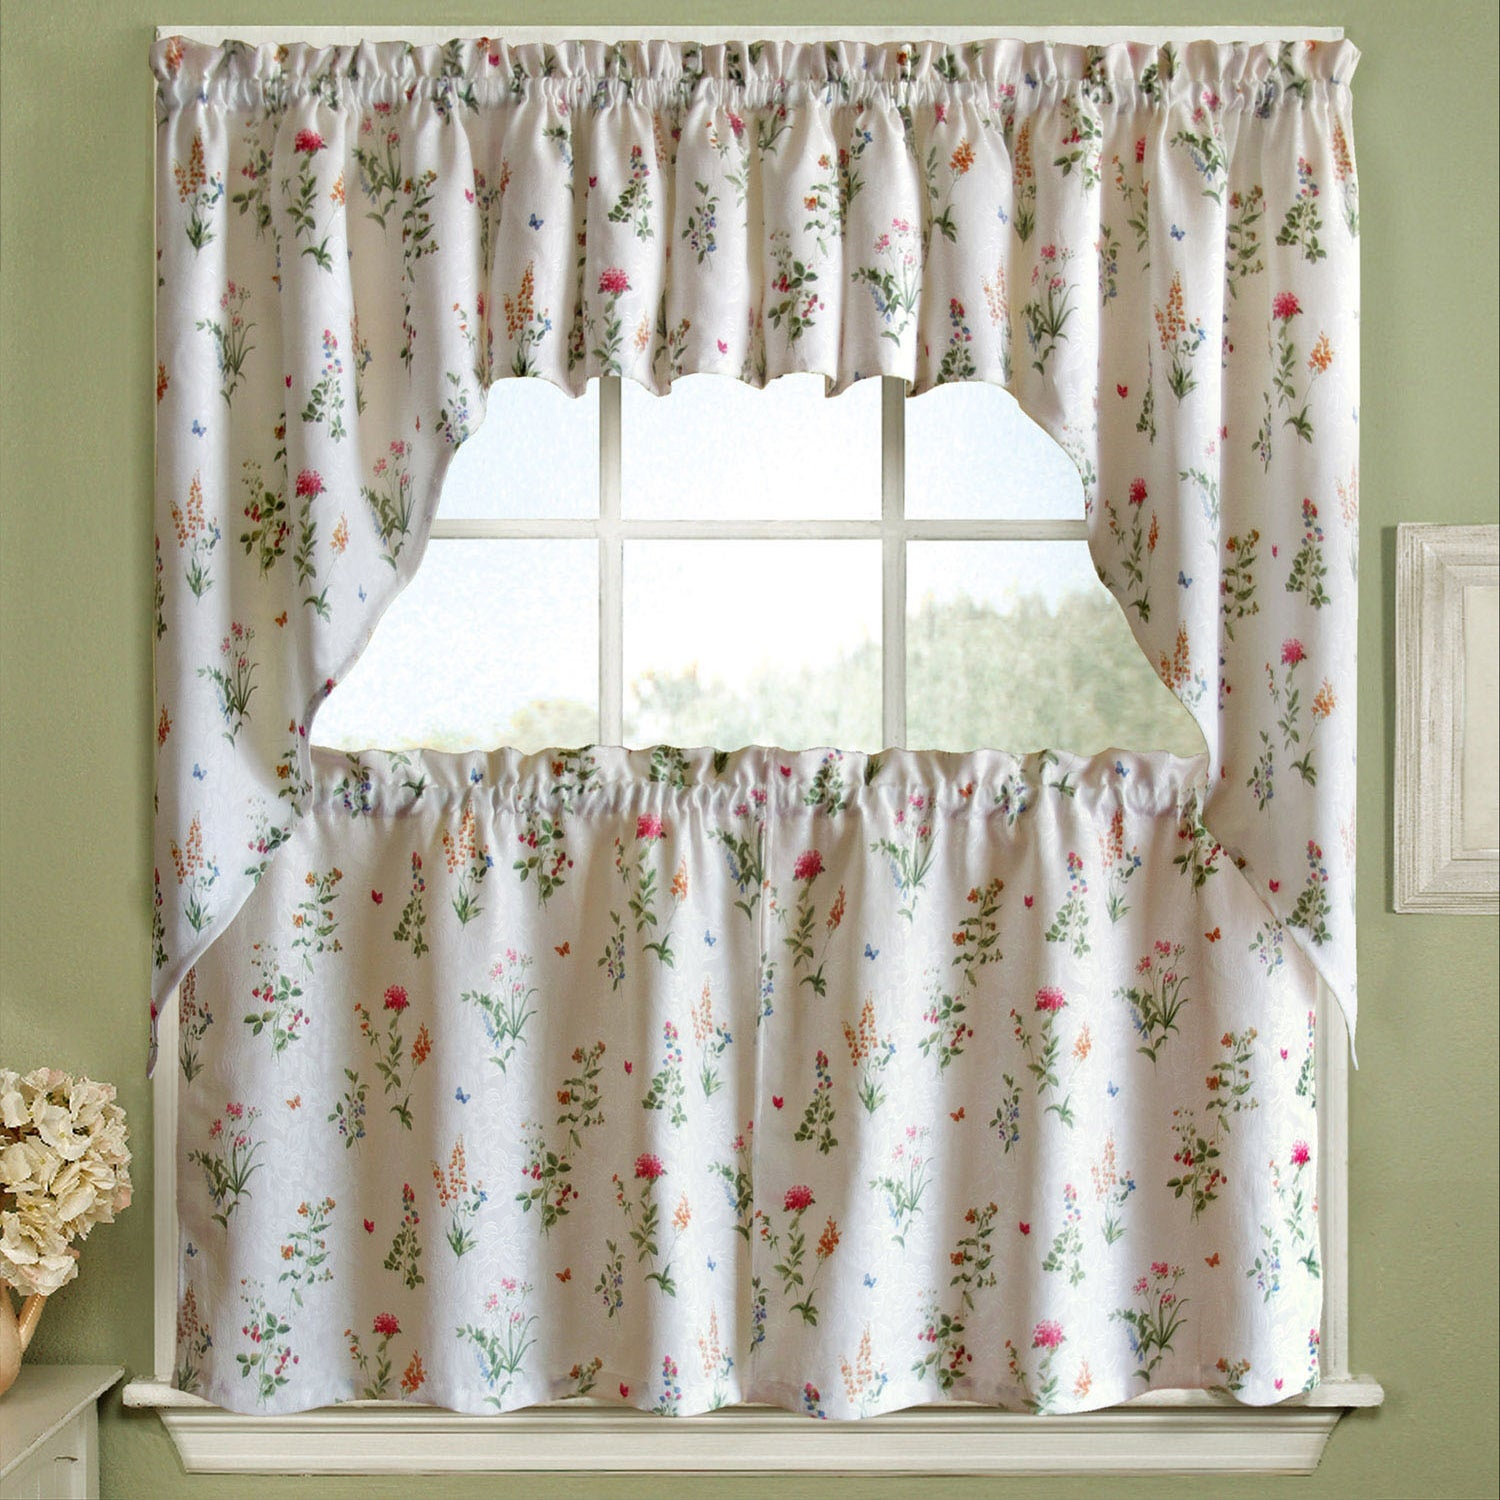 Vibrant Floral Garden Motif Jacquard Window Curtain Pieces Throughout Tree Branch Valance And Tiers Sets (View 5 of 20)